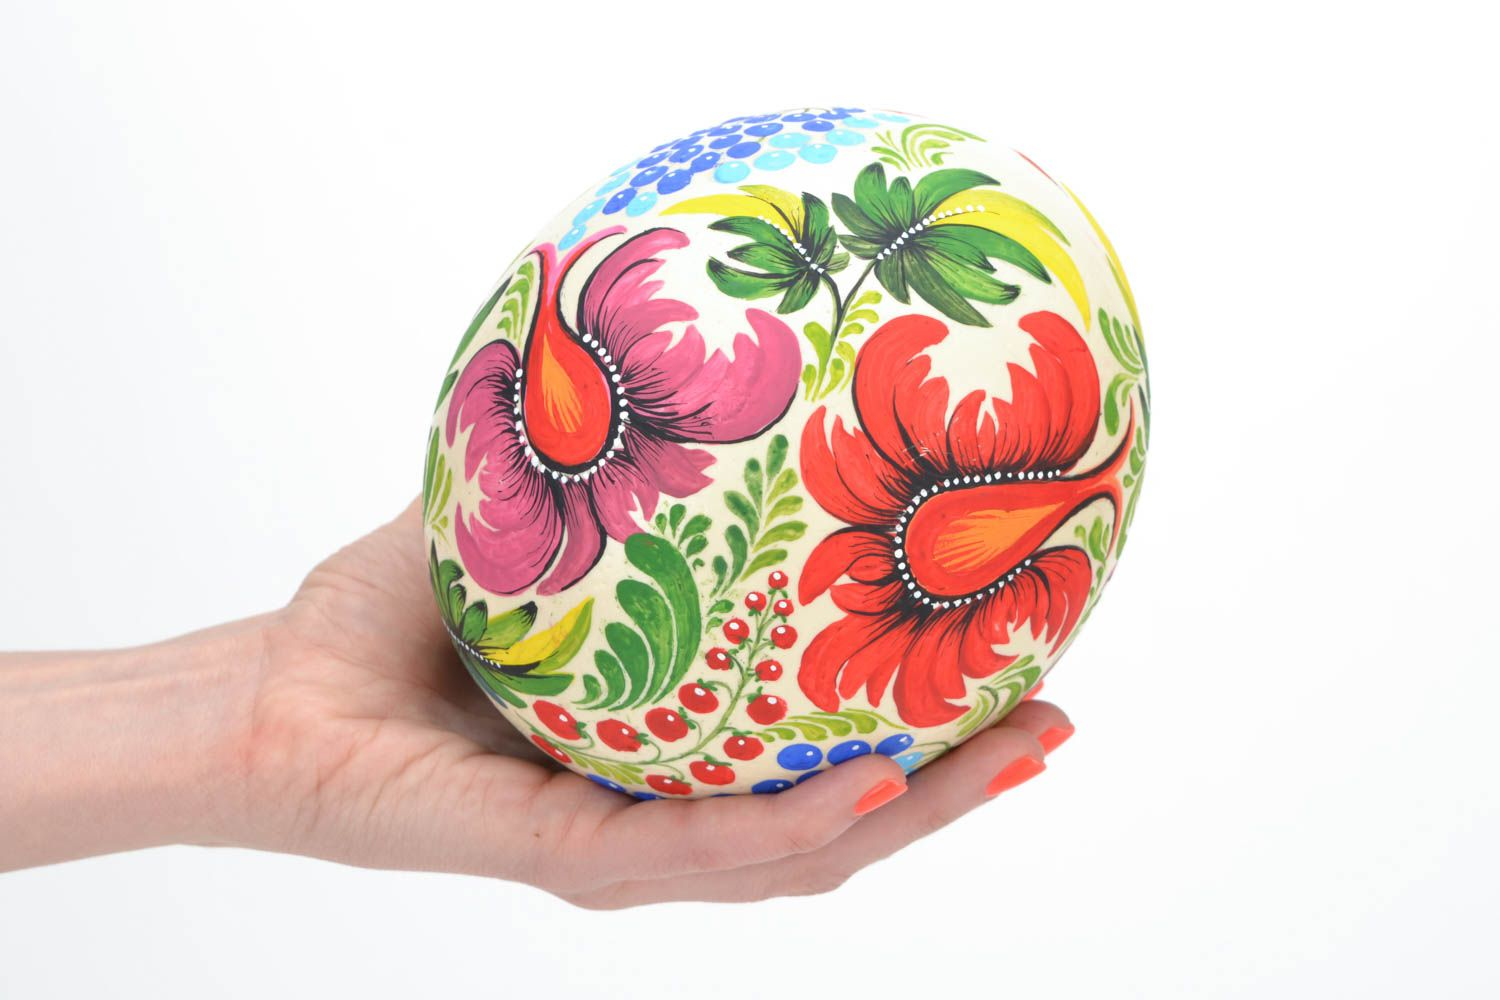 ostrich easter eggs Decorated ostrich egg collector handmade gift for Easter - MADEheart.com